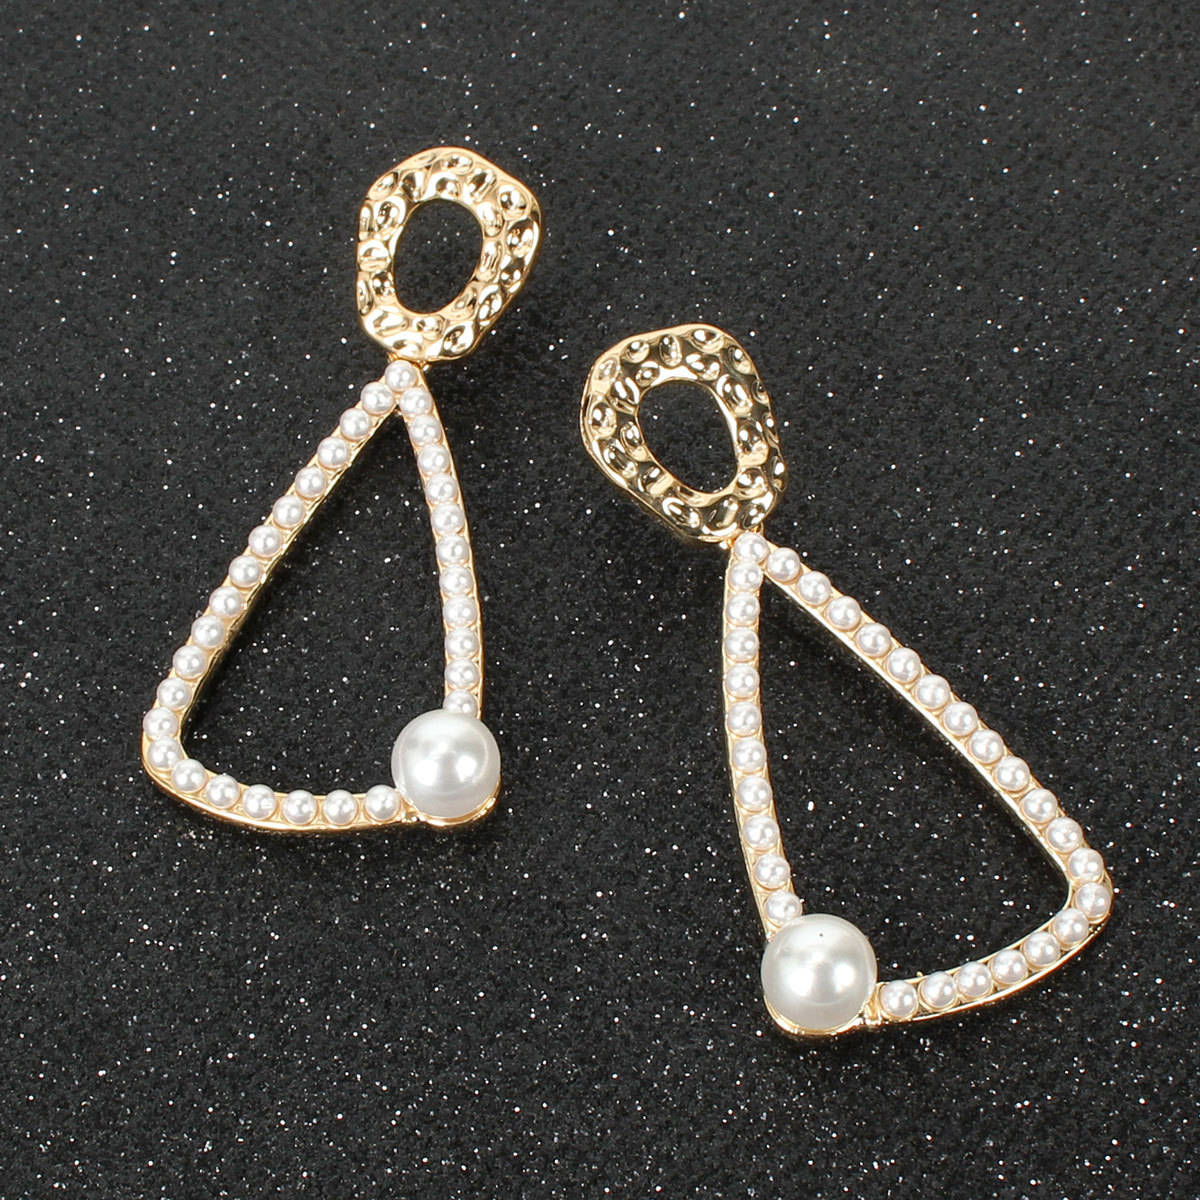 Earrings female geometric metal imitation pearl long earrings NHCT183778